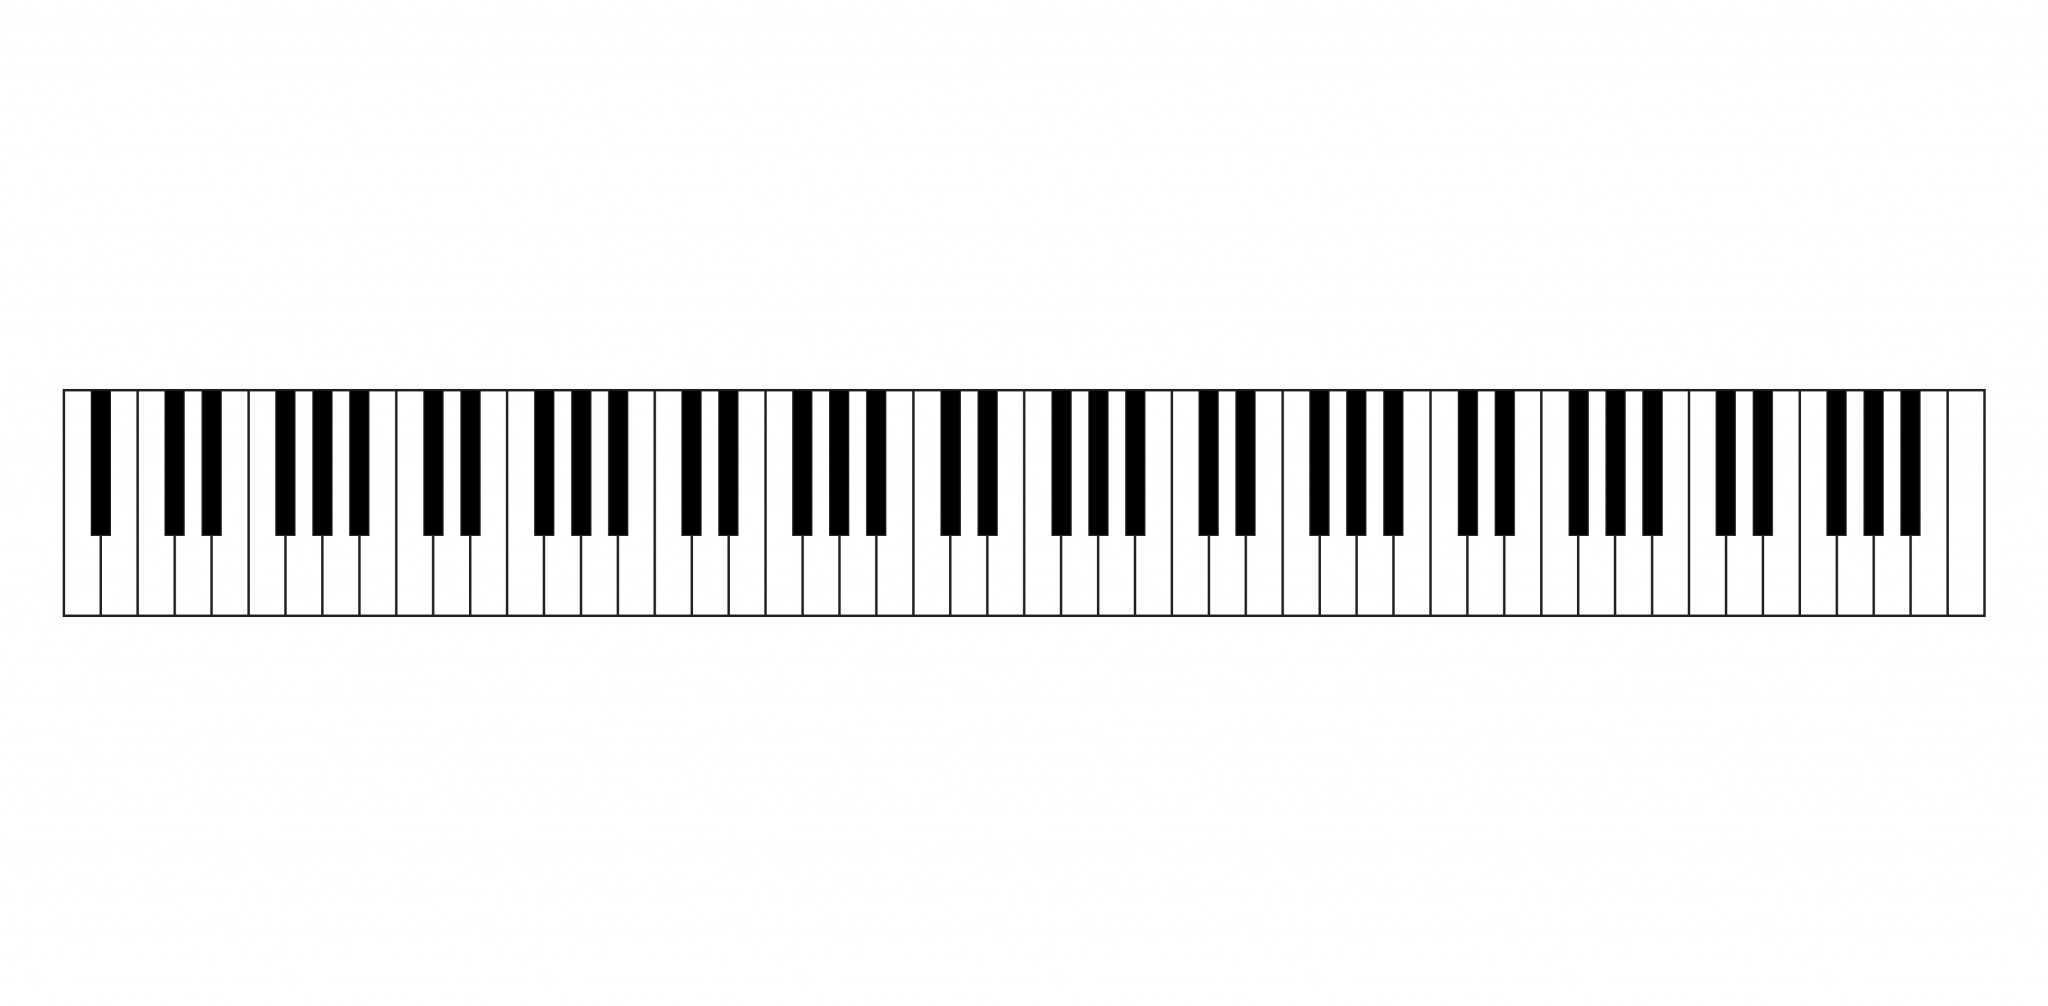 How to play the organ 5